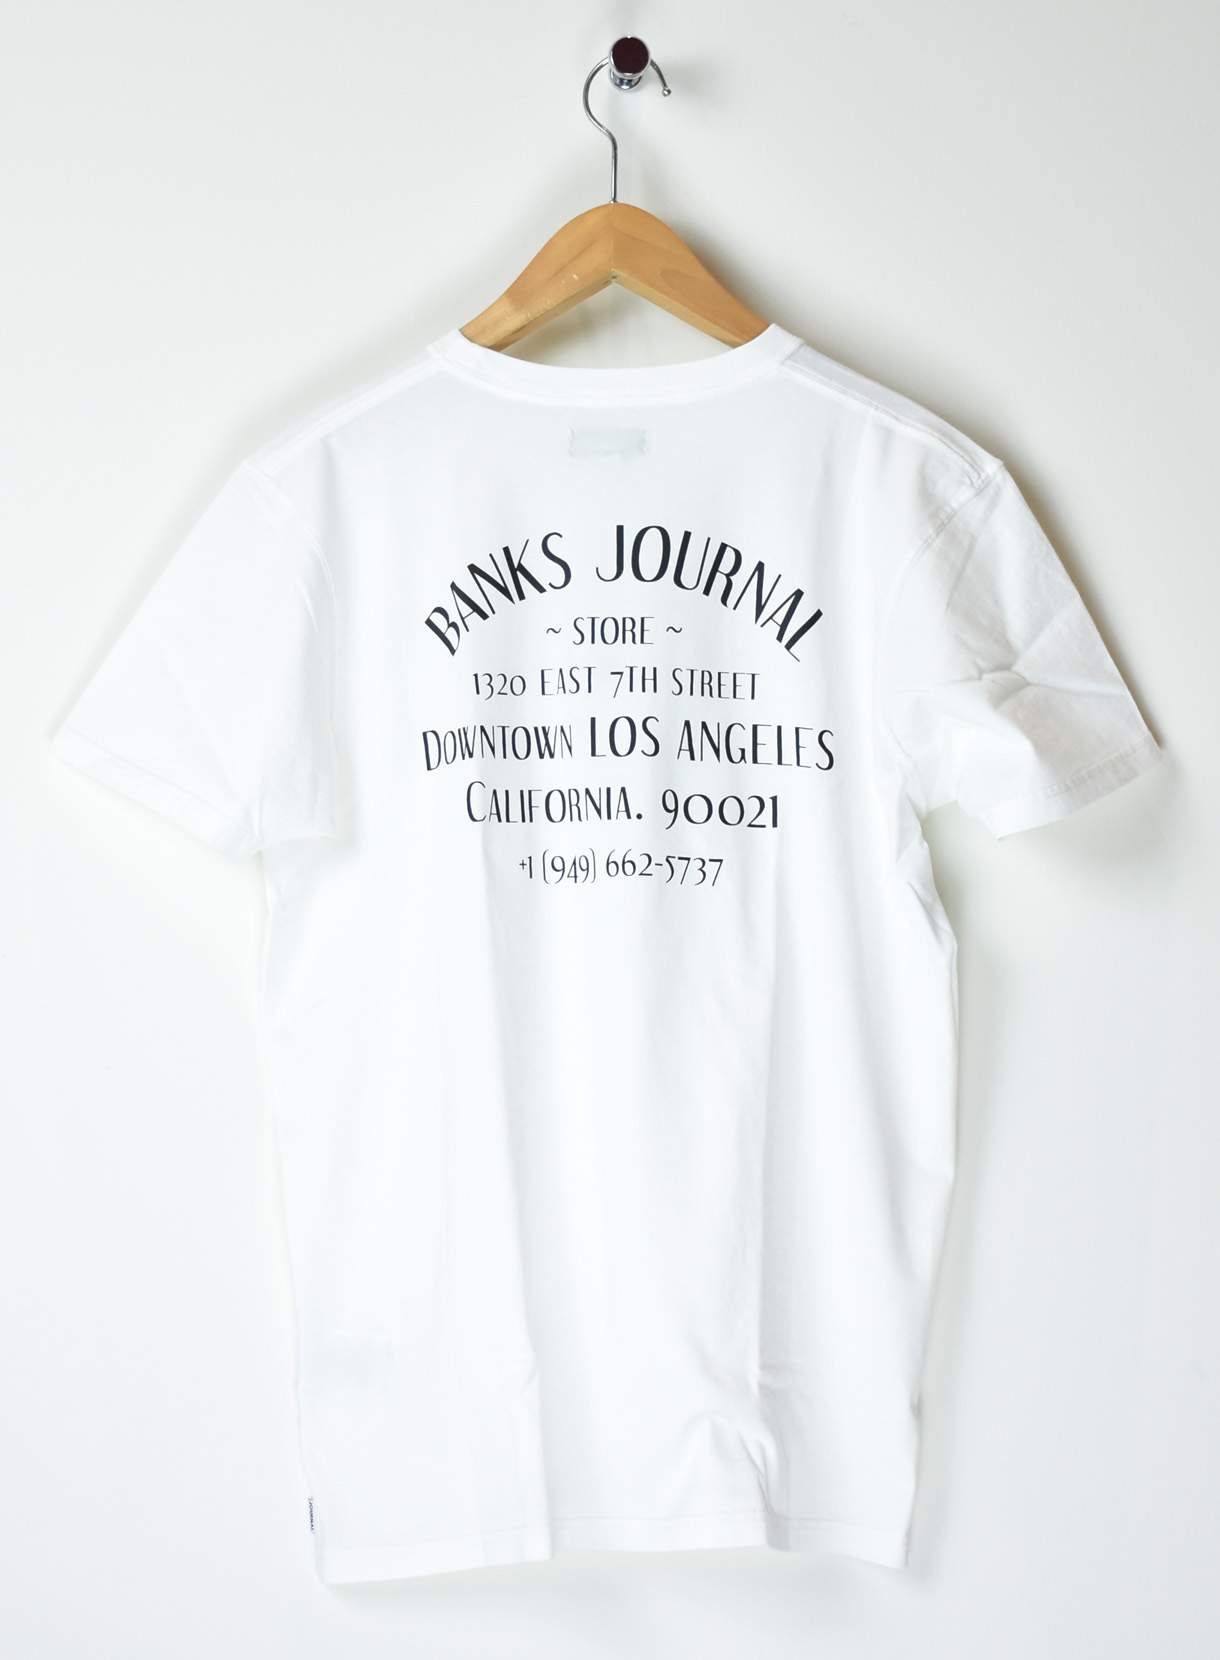 BANKS DOWNTOWN Tシャツ